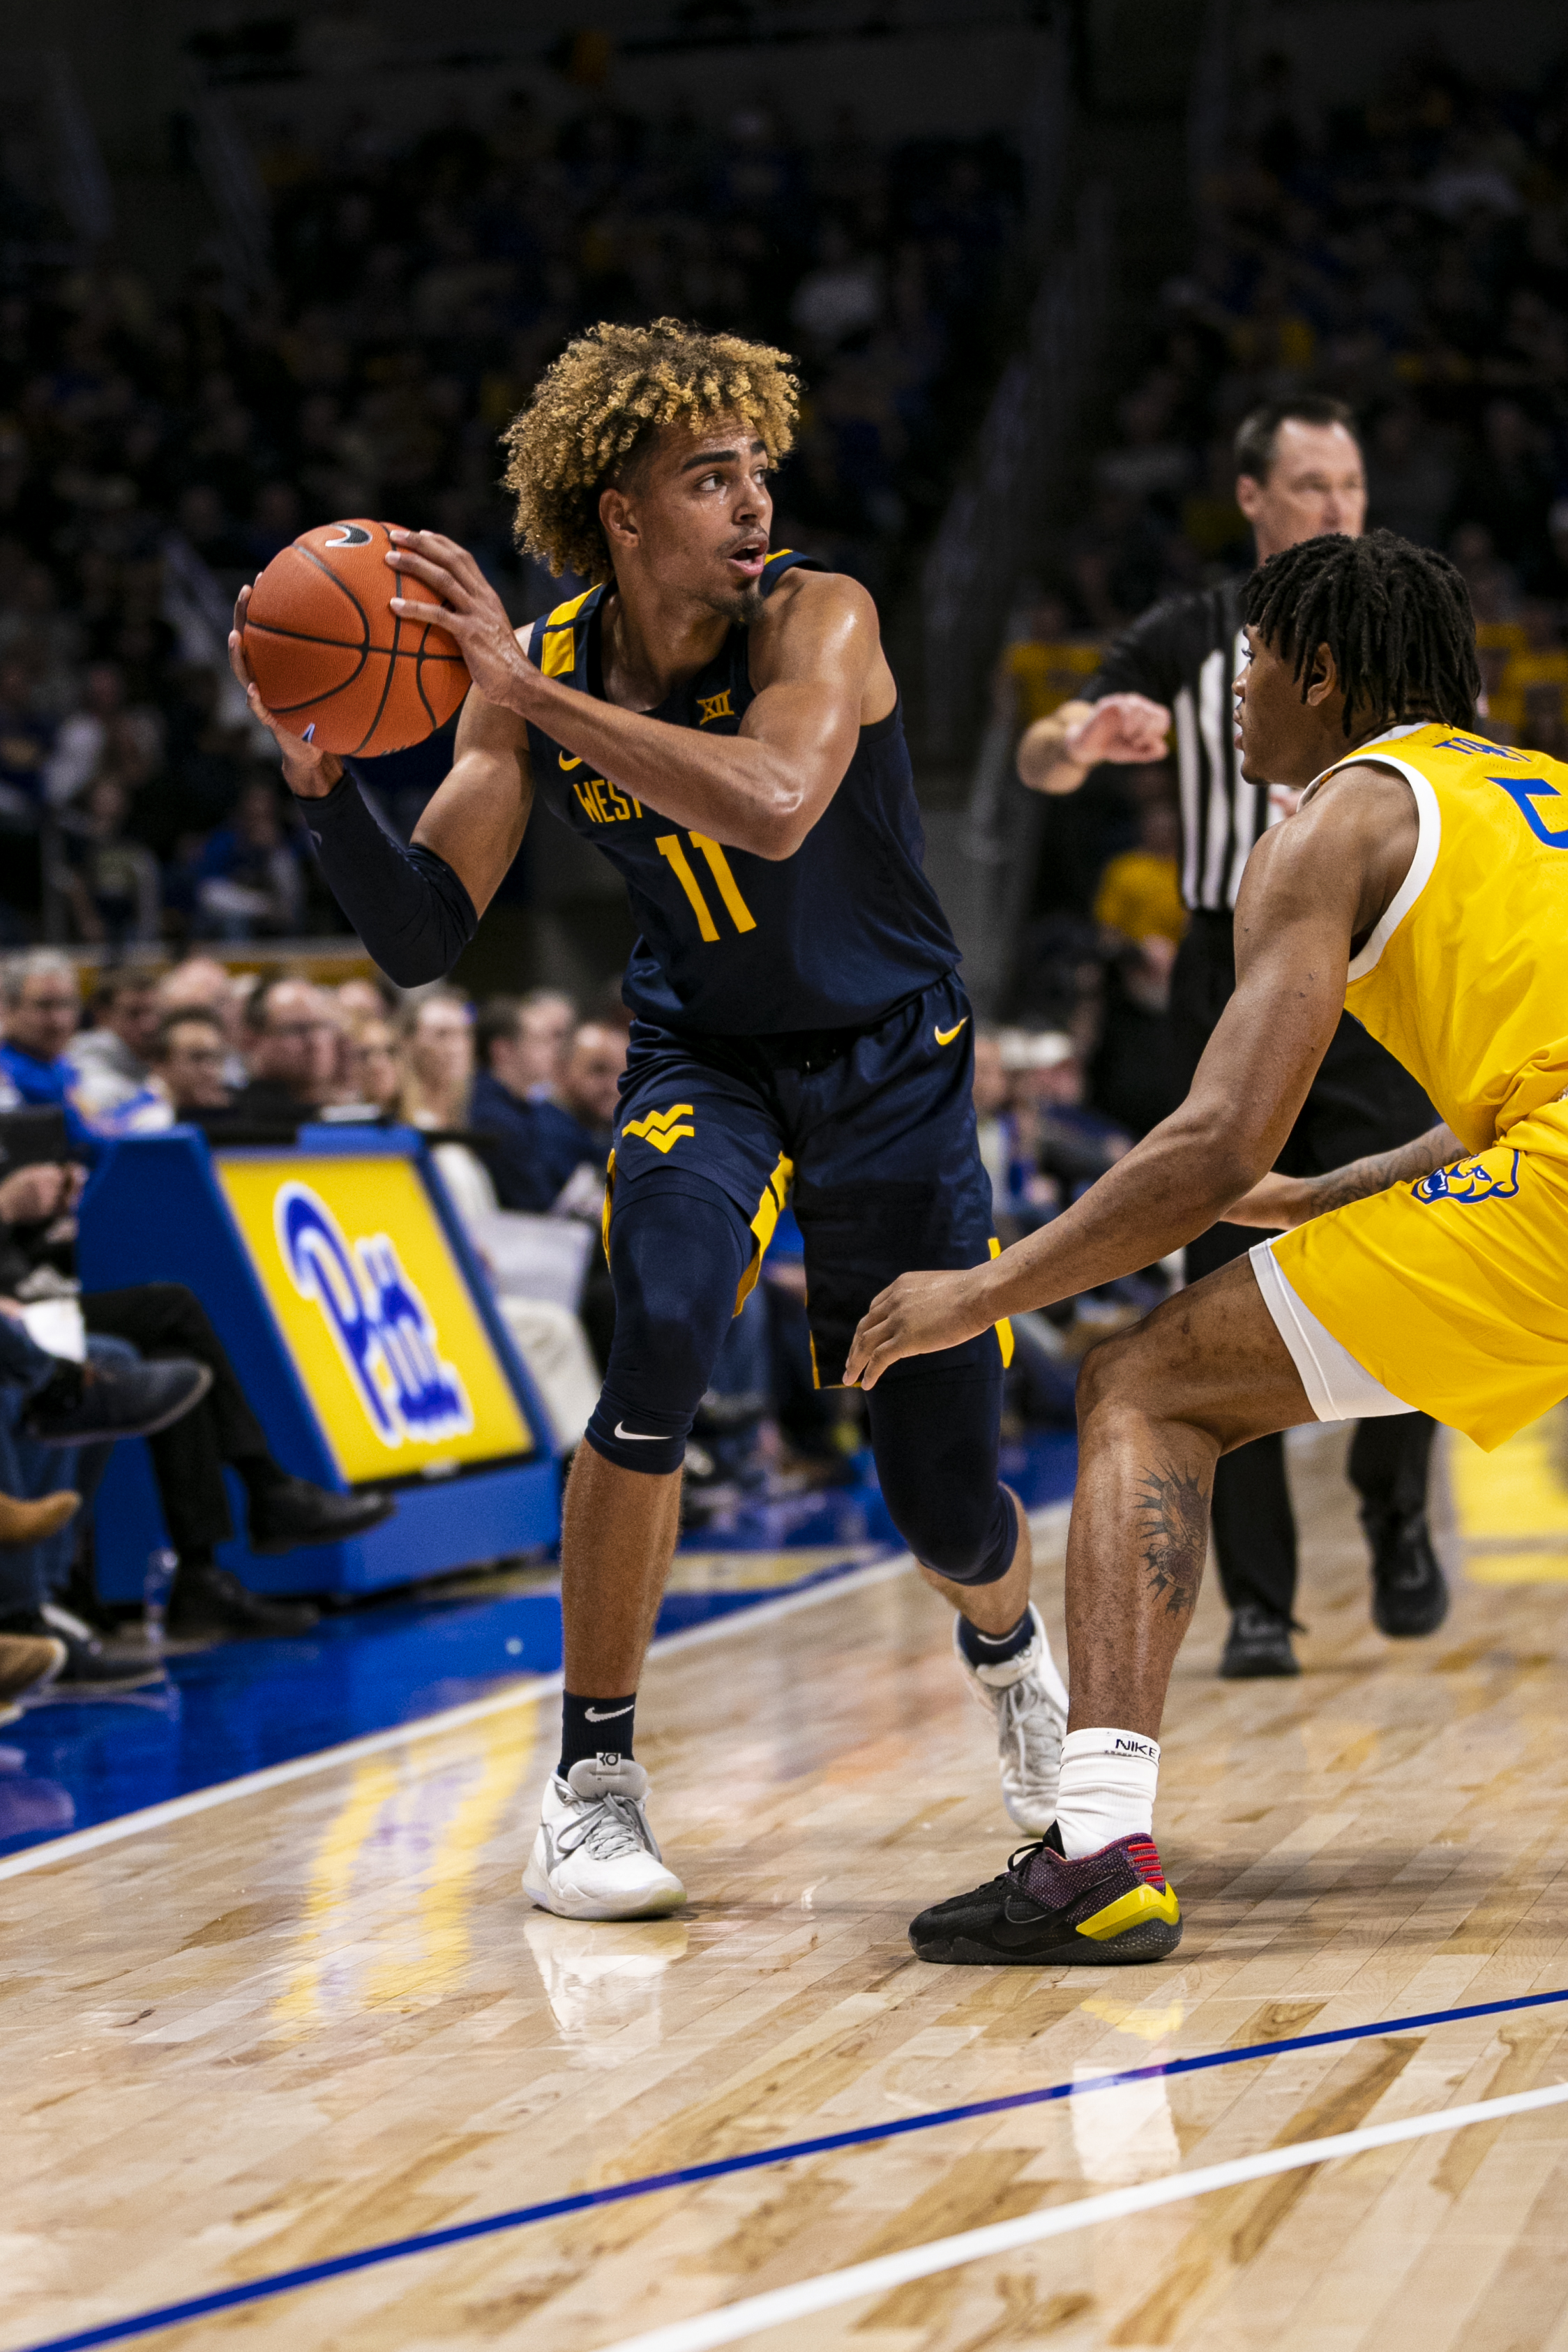 COLLEGE BASKETBALL: NOV 15 West Virginia at Pitt